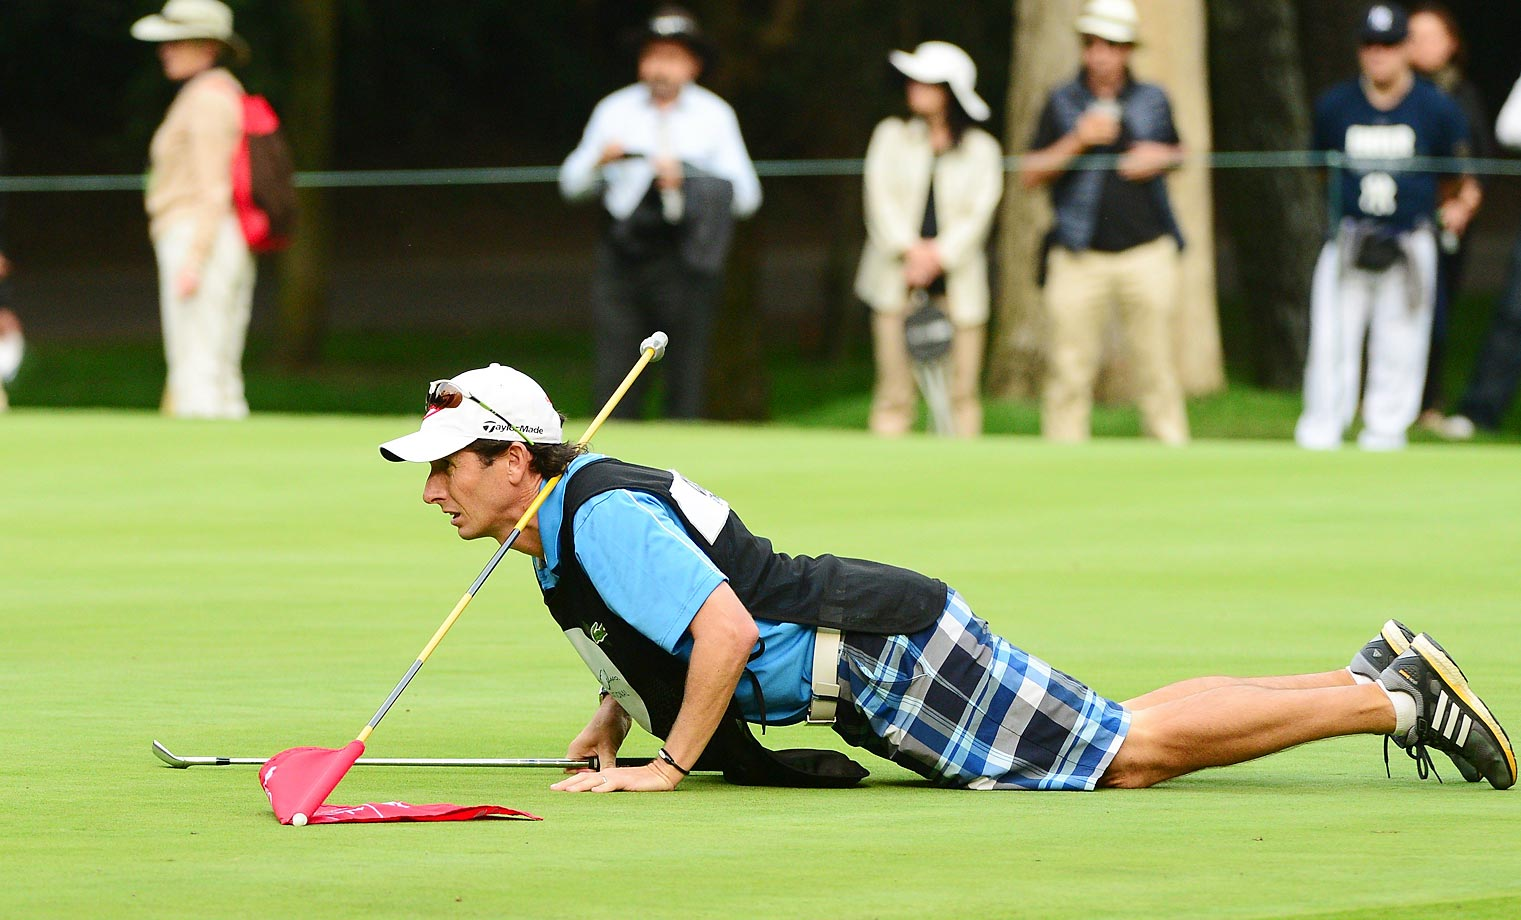 Paula Creamer's caddie gets down to read a putt at the Lorena Ochoa Invitational Golf Tournament in Mexico.